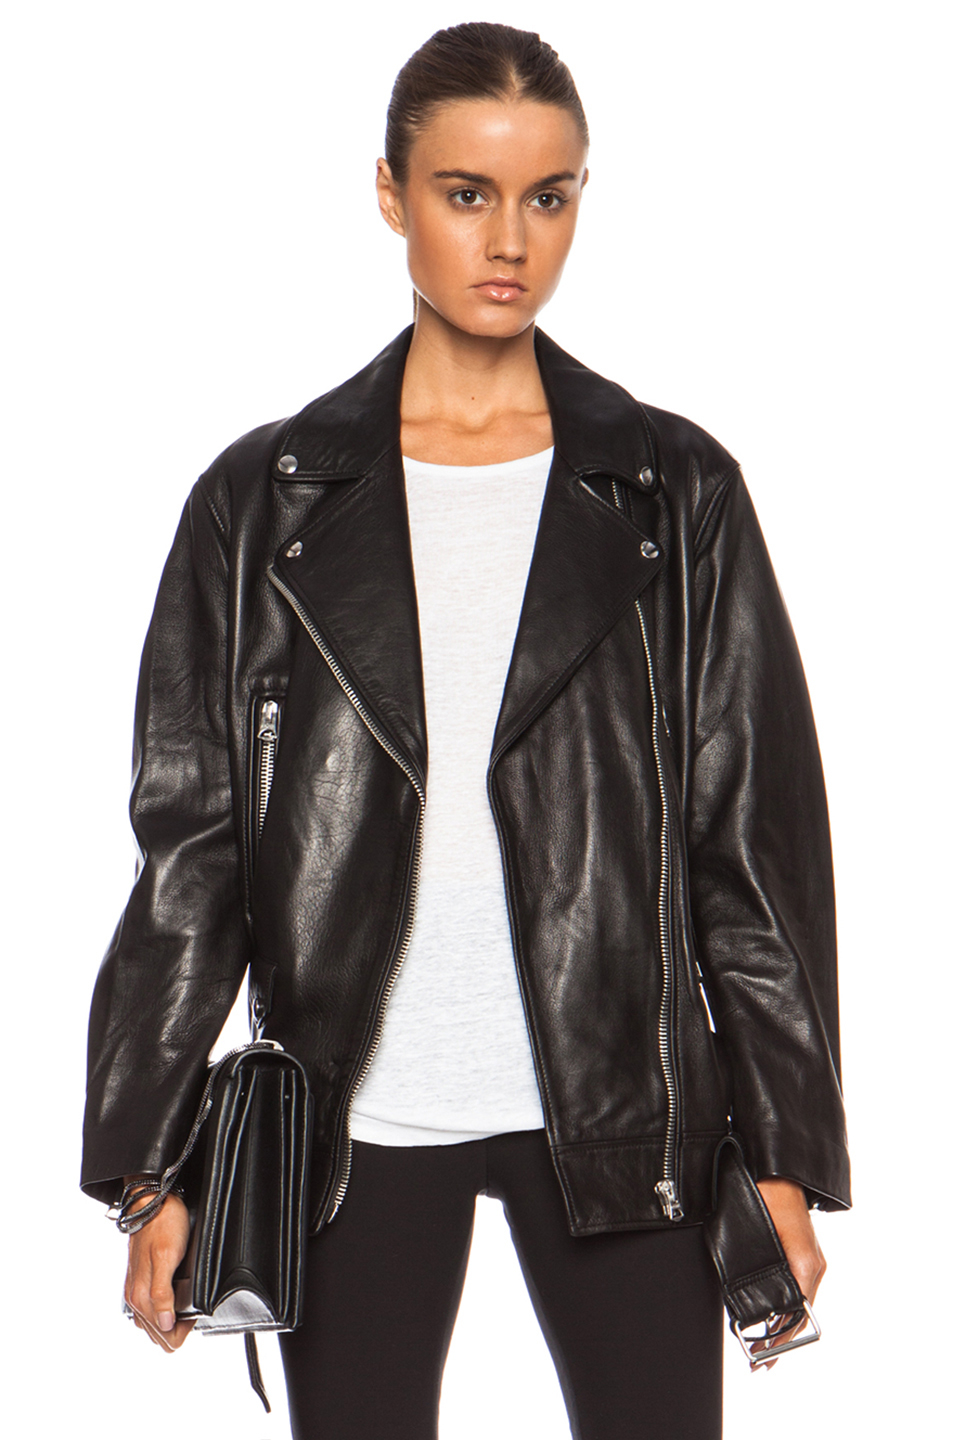 Demi Lovato Acne Studios Leather Jacket | Desert Leather